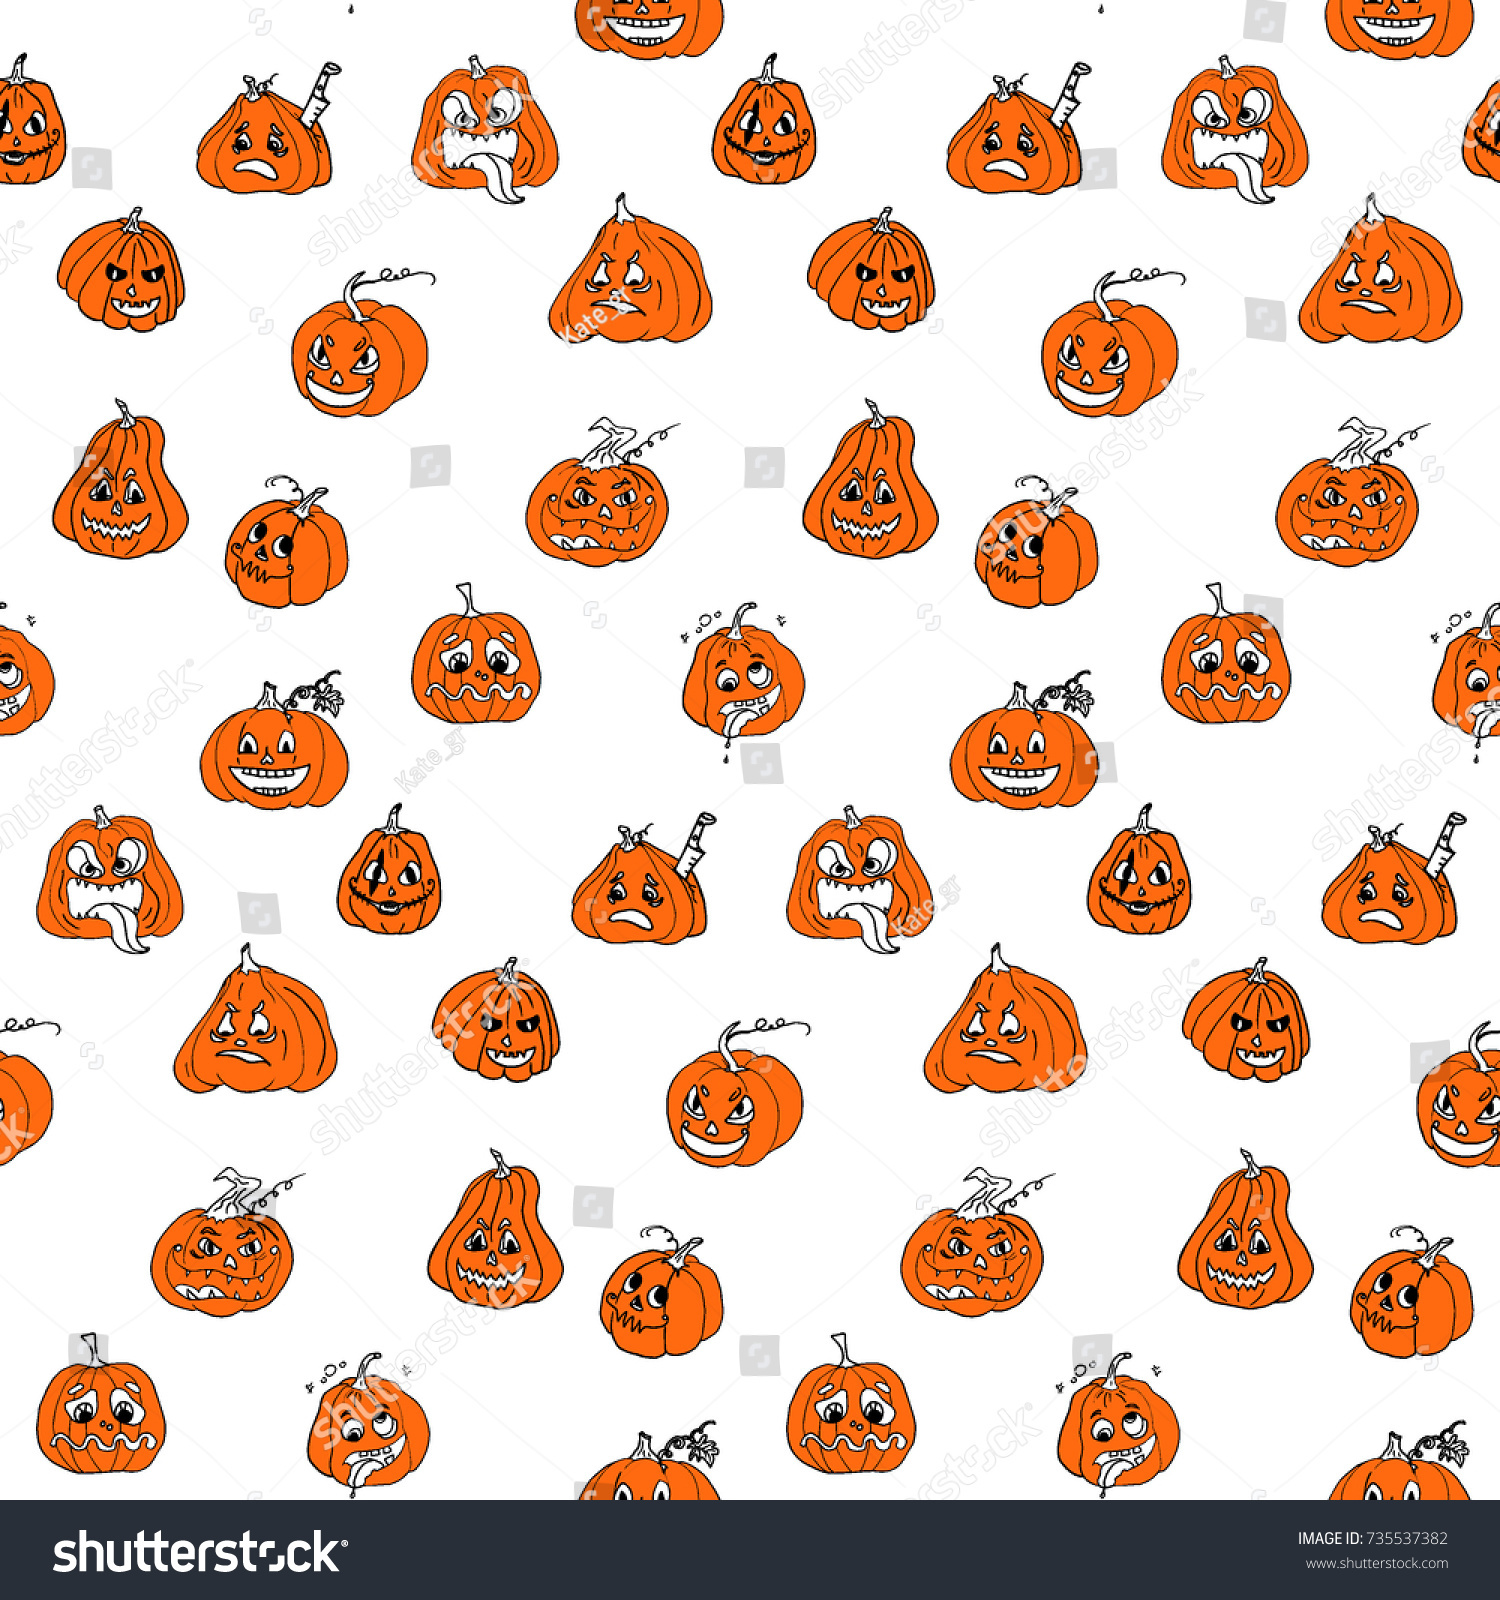 Halloween Doodles Color Sketch Seamless Pattern Stock Vector Orange Themed Circuit Board Drawing Clipart Illustration With Pumpkin Hand Drawn Doodle Autumn